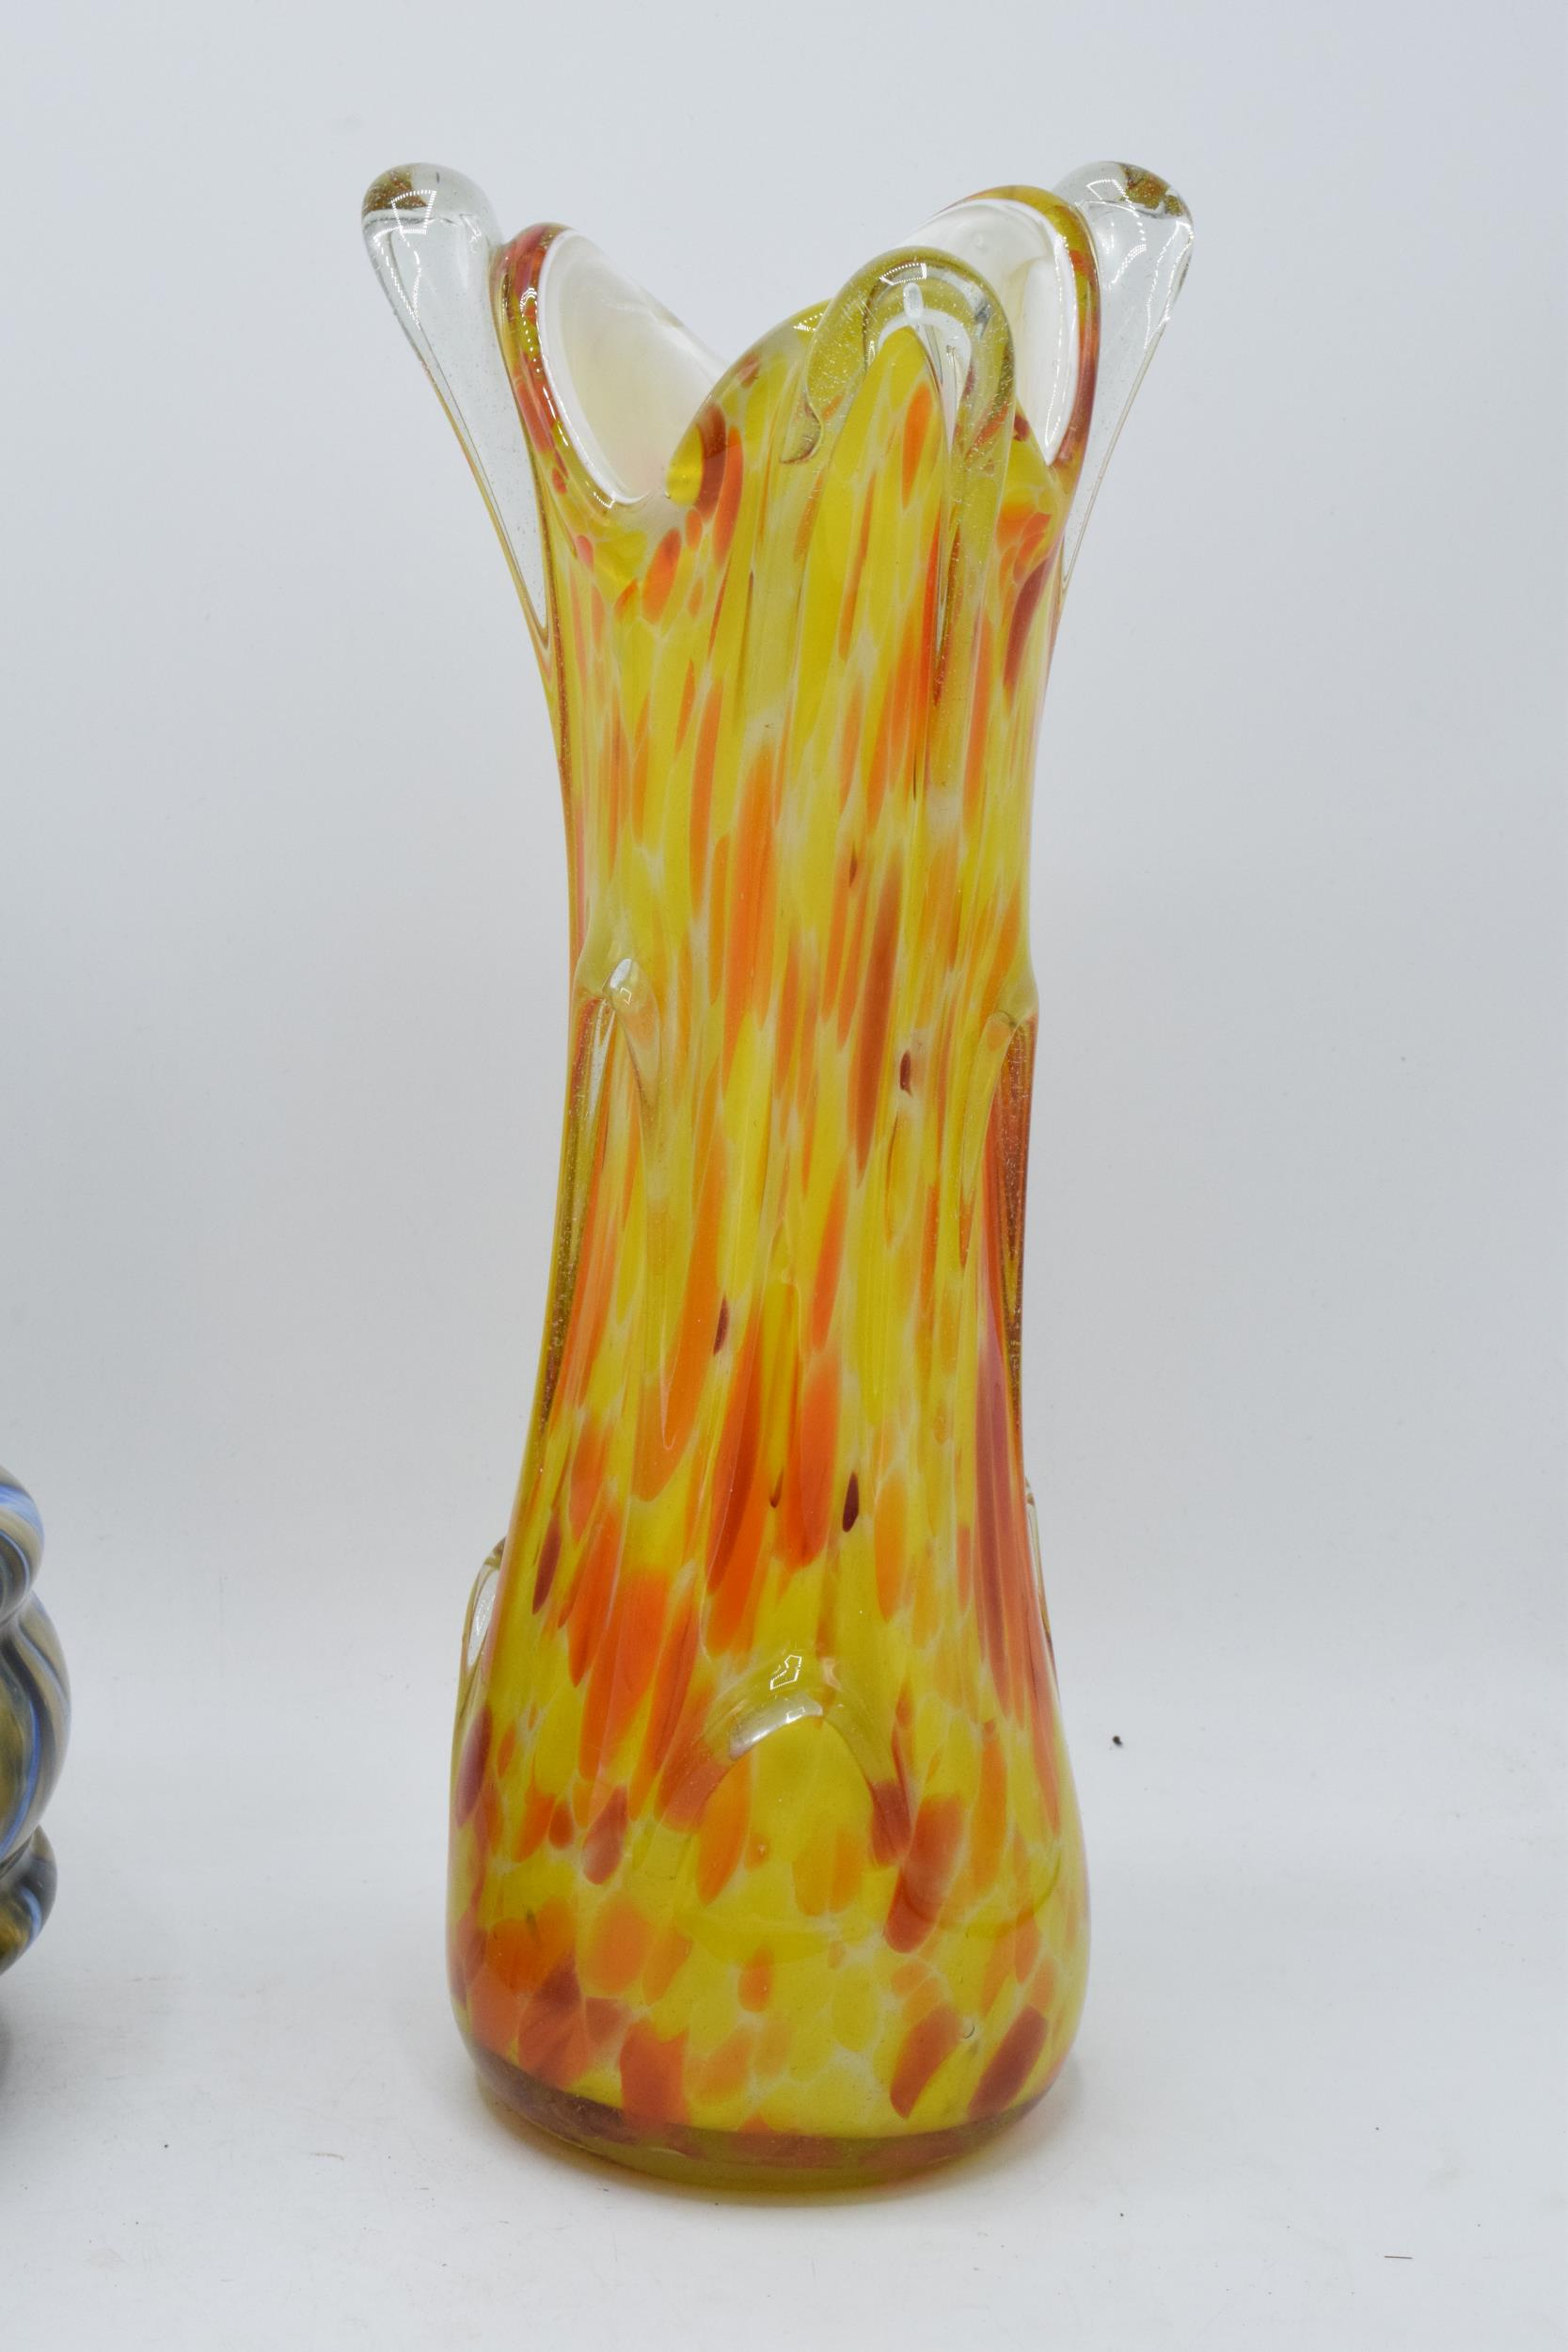 A collection of assorted art / studio glass in the form of jugs, vases, a dish etc. Condition is - Image 2 of 8